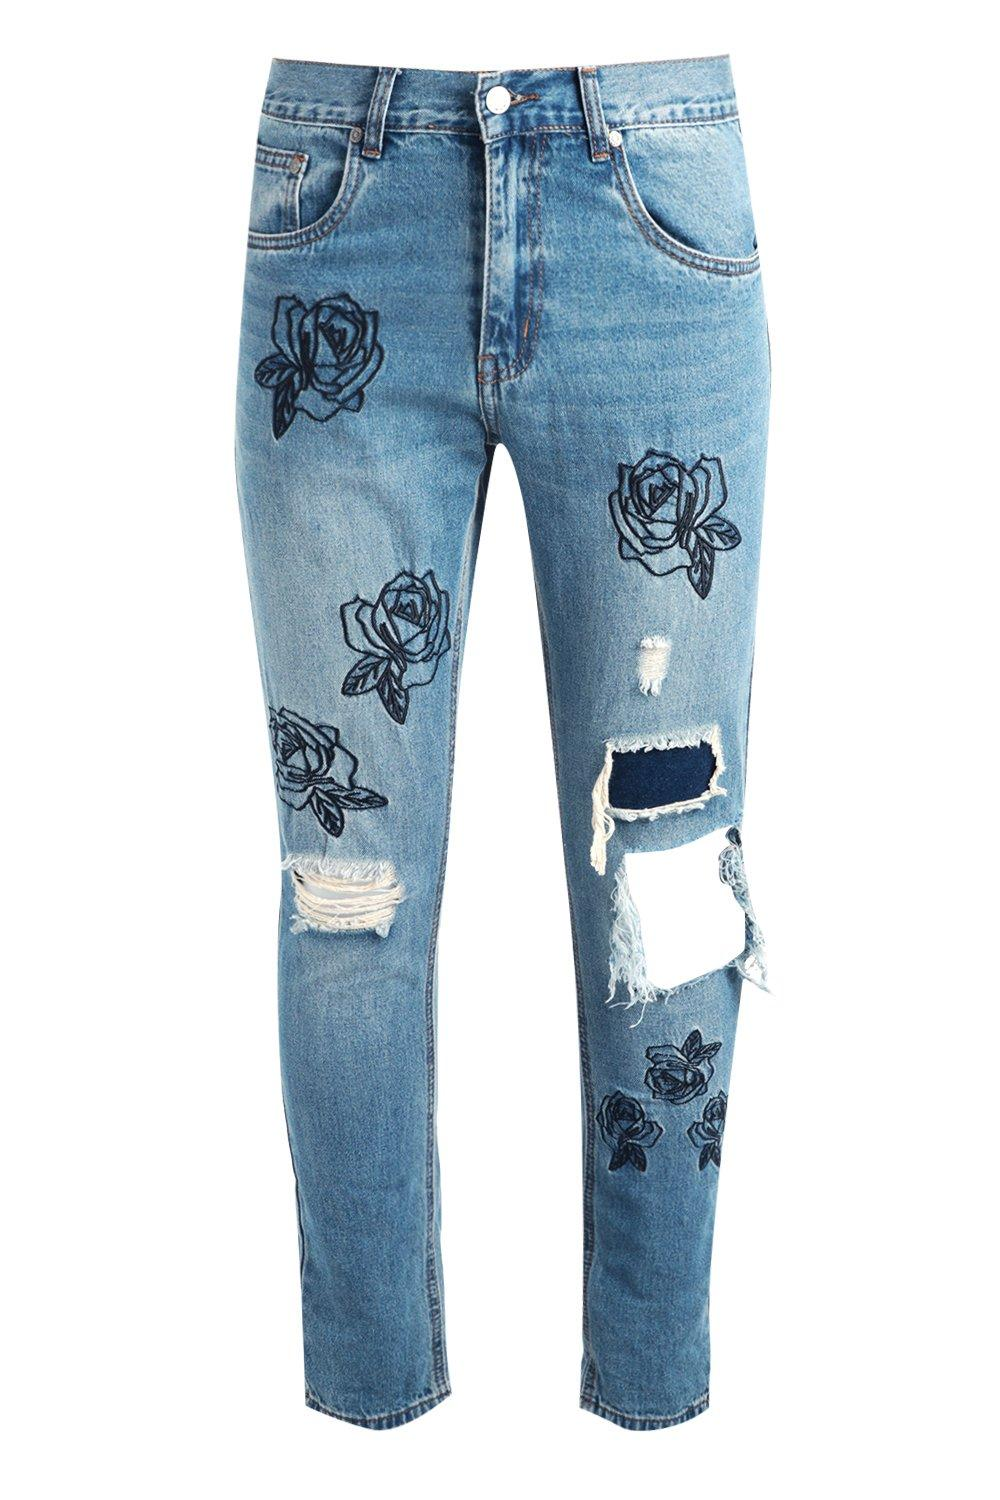 Boohoo mens skinny floral embroidered rip repair jeans